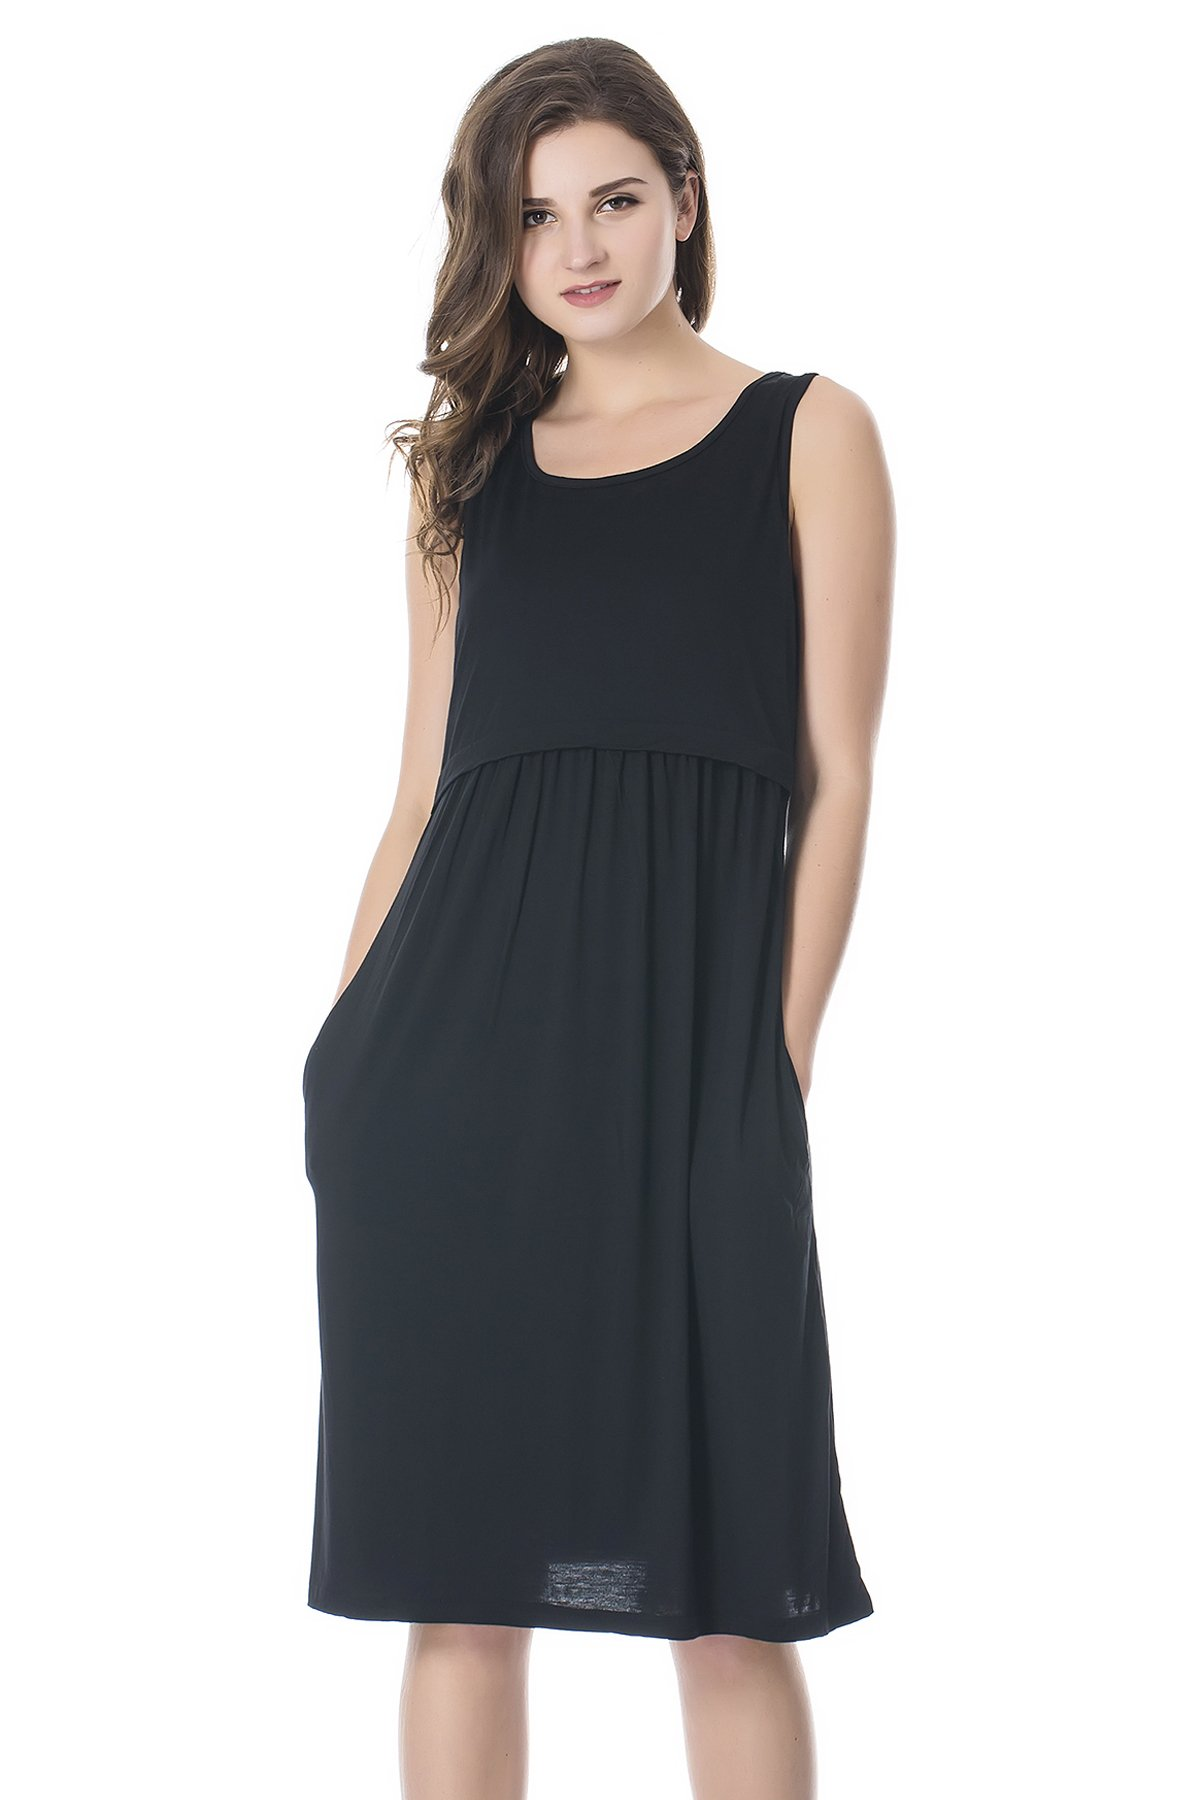 Bearsland Womens Sleeveless Maternity Dress Empire Waist Nursing Breastfeeding Dress Summer, Black, Medium